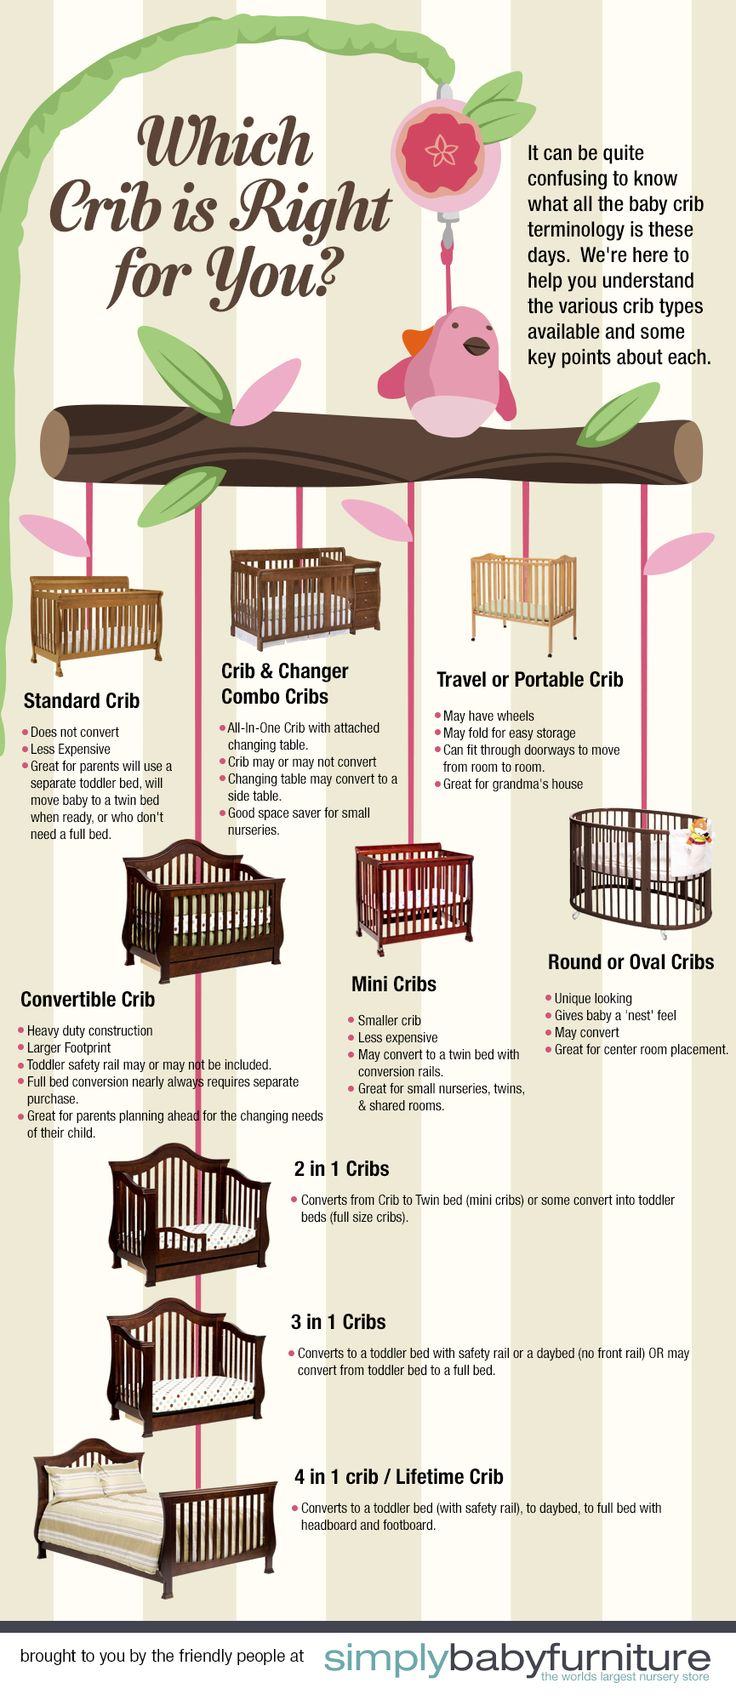 Baby cribs in kenya - Learn About Different Babycrib Types And Find Out Which Crib Is Right For You